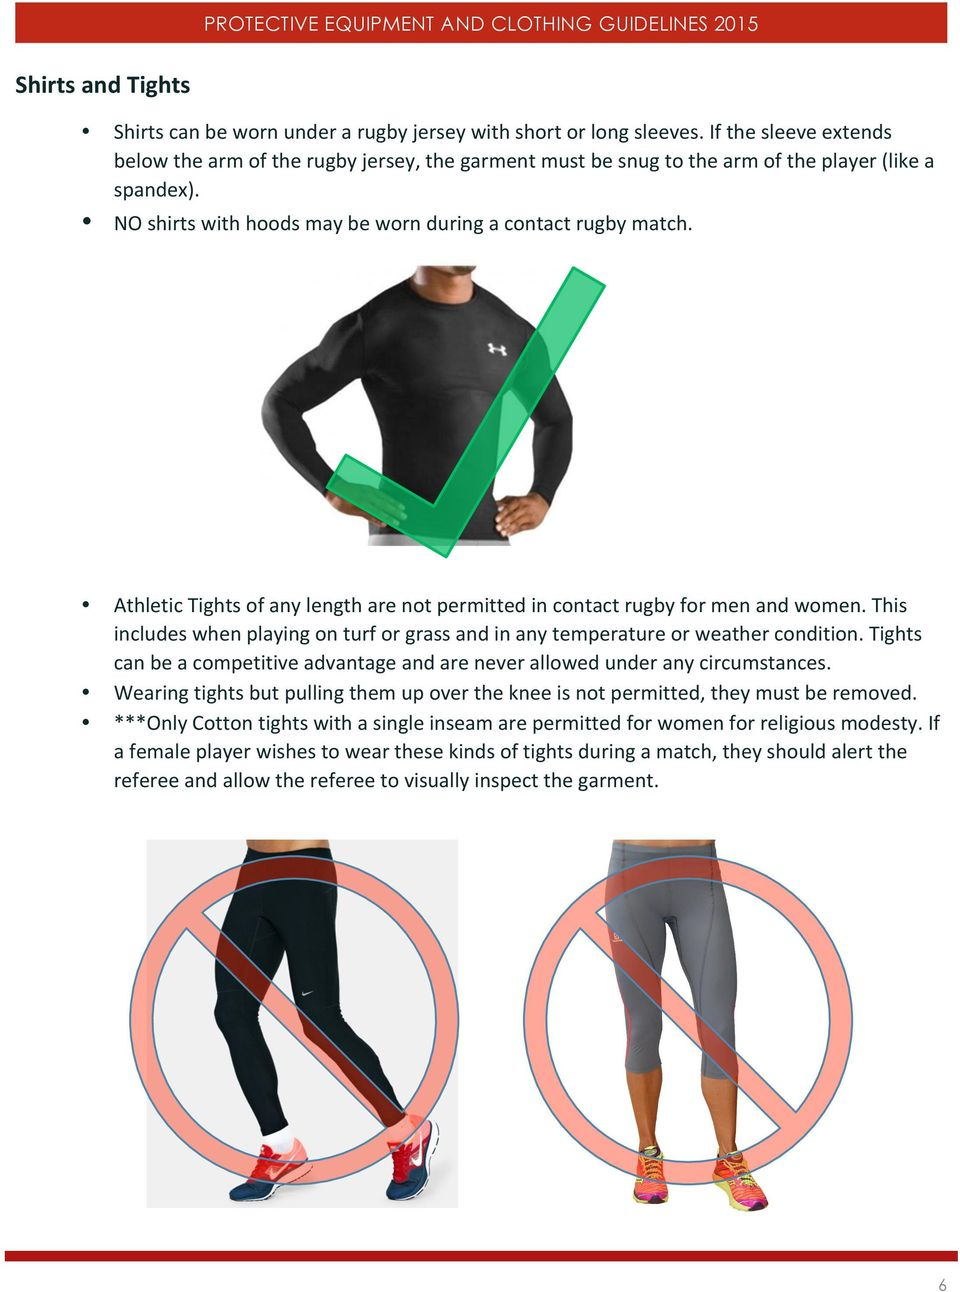 Athletic Tights of any length are not permitted in contact rugby for men and women. This includes when playing on turf or grass and in any temperature or weather condition.